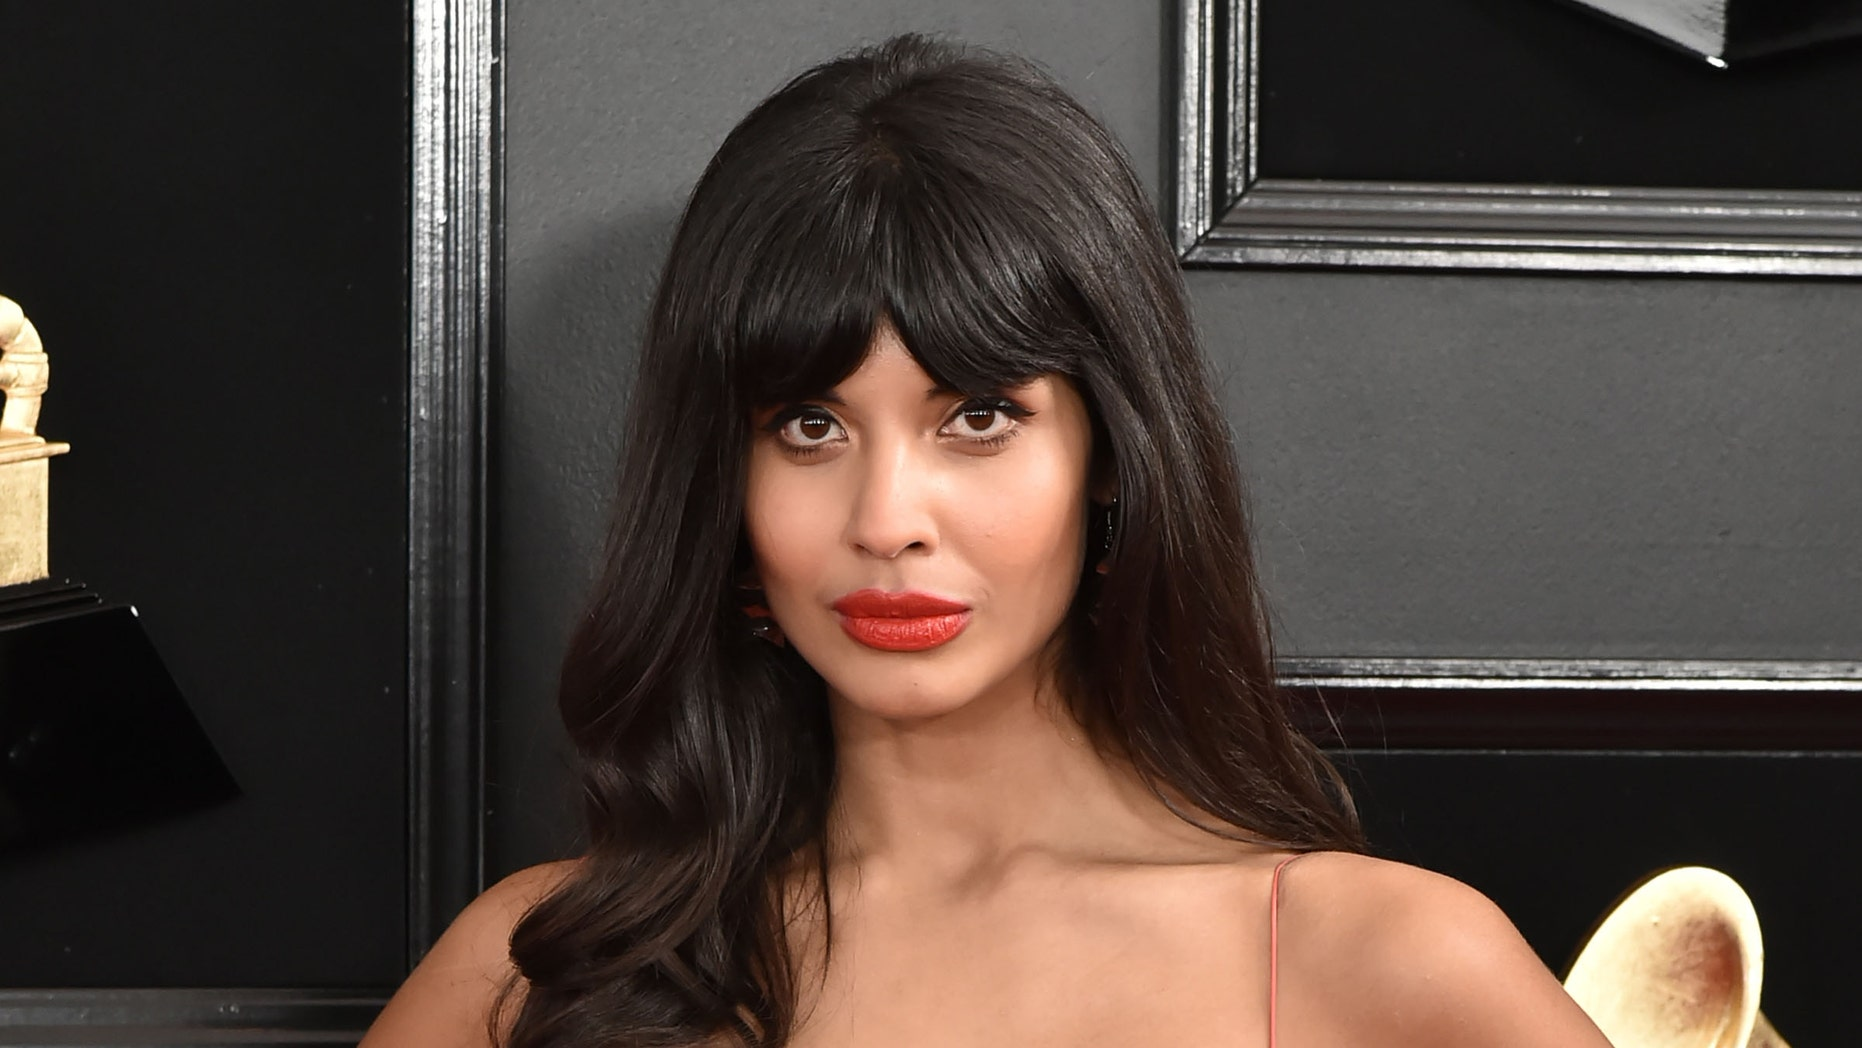 Jameela Jamil attends the 61st Annual Grammy Awards at Staples Center